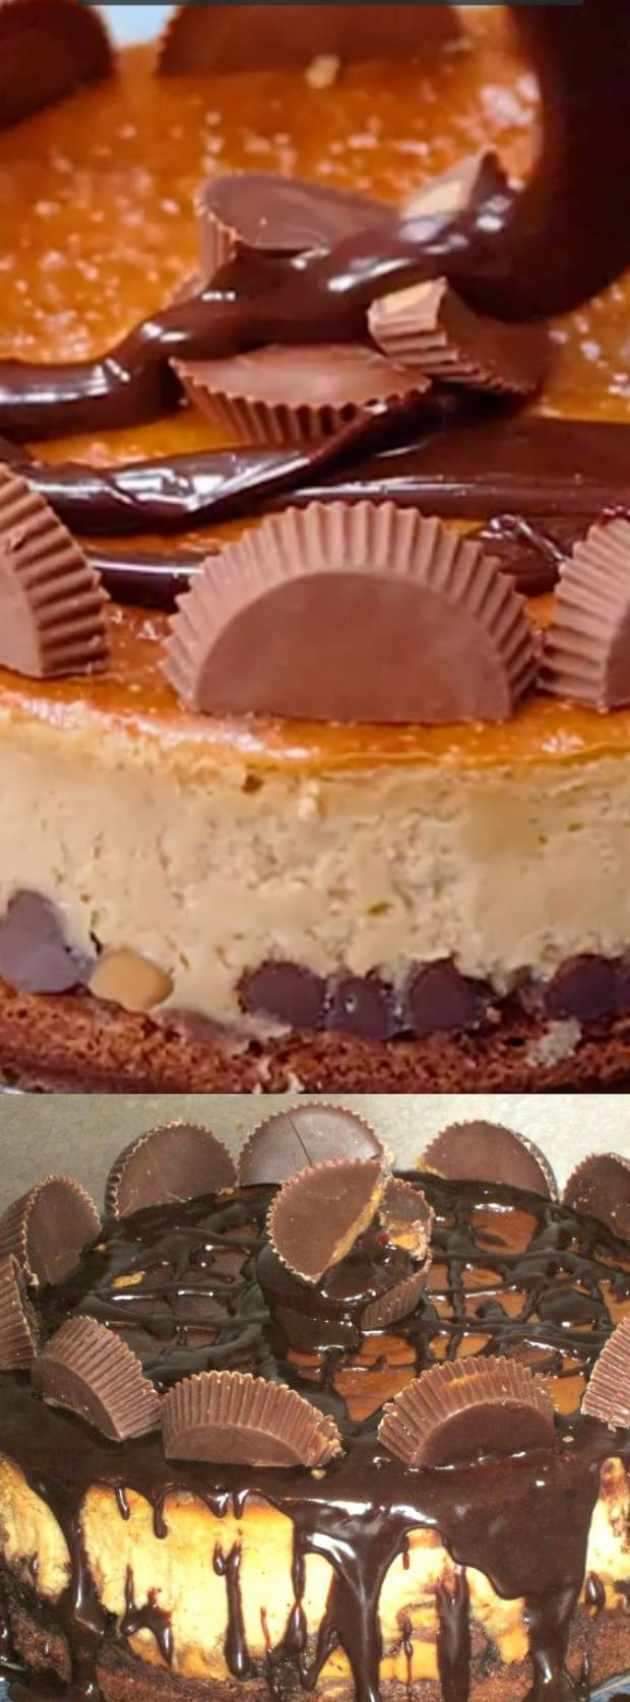 Brownie Bottom Peanut Butter Cheesecake longpin